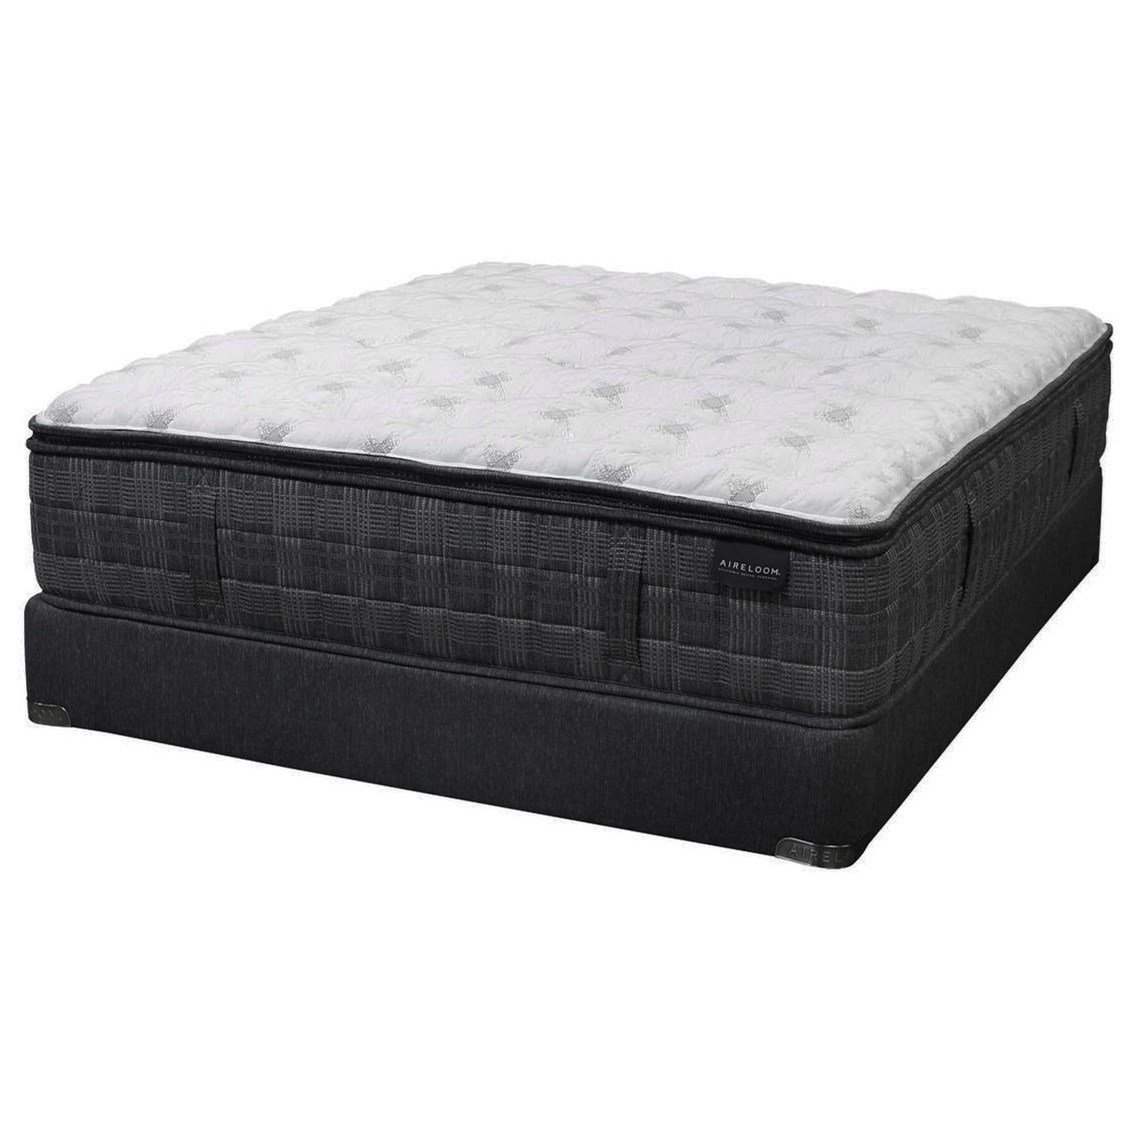 Katella Lux Top Firm King Firm Luxetop™ Mattress Set by Aireloom Bedding at Miller Waldrop Furniture and Decor